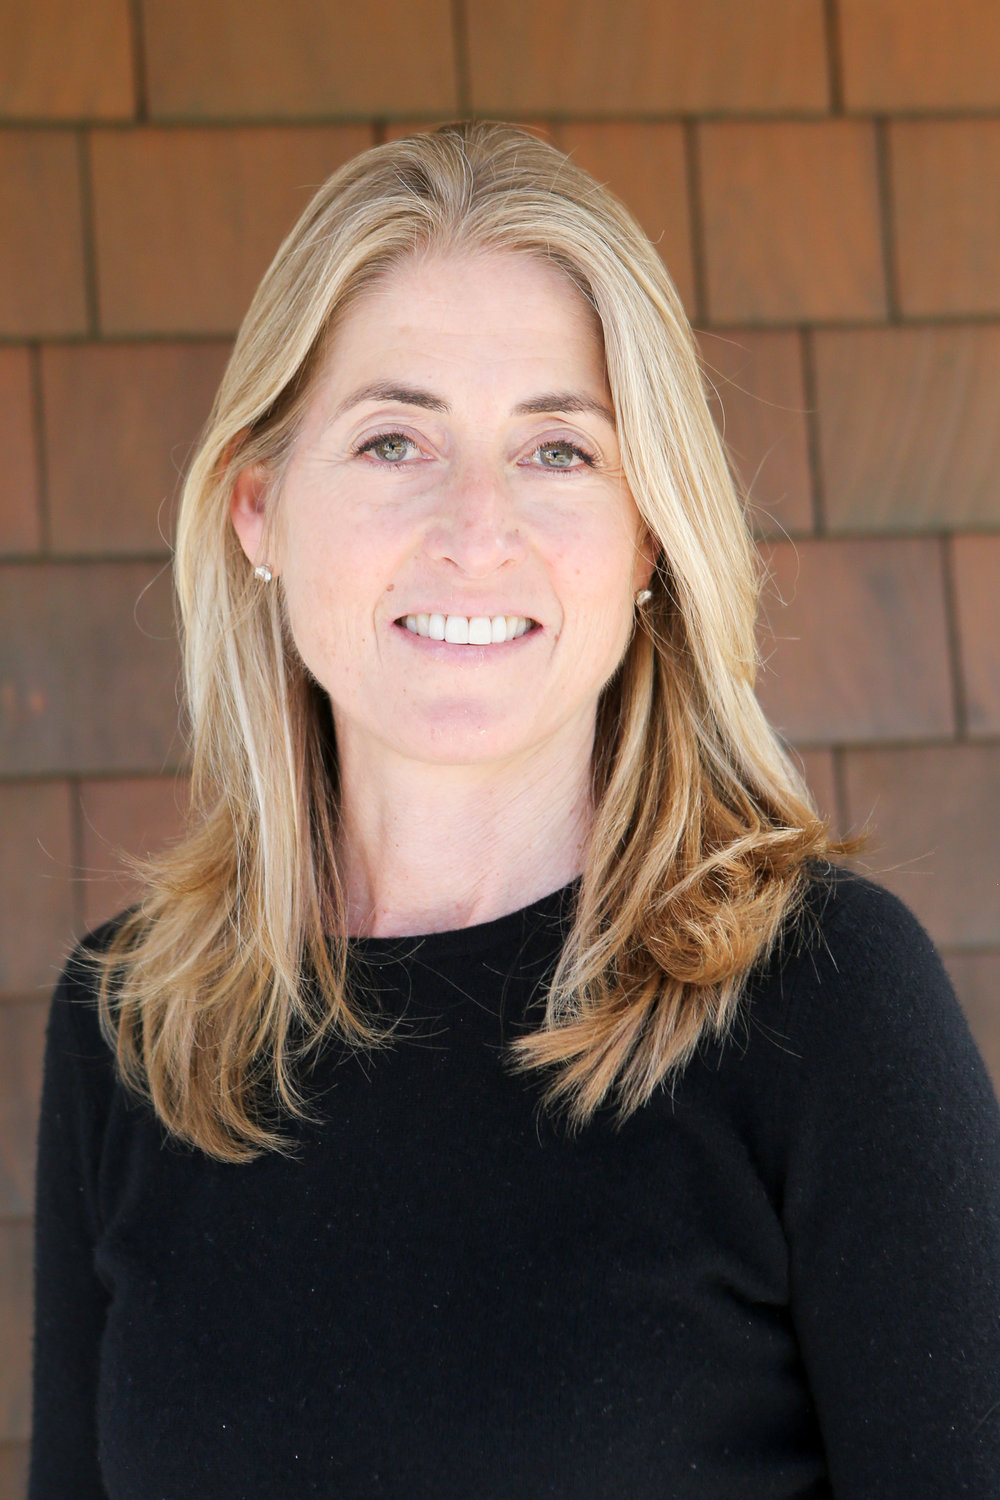 Mimi Van Son, Director of Development, 3 years at MTS